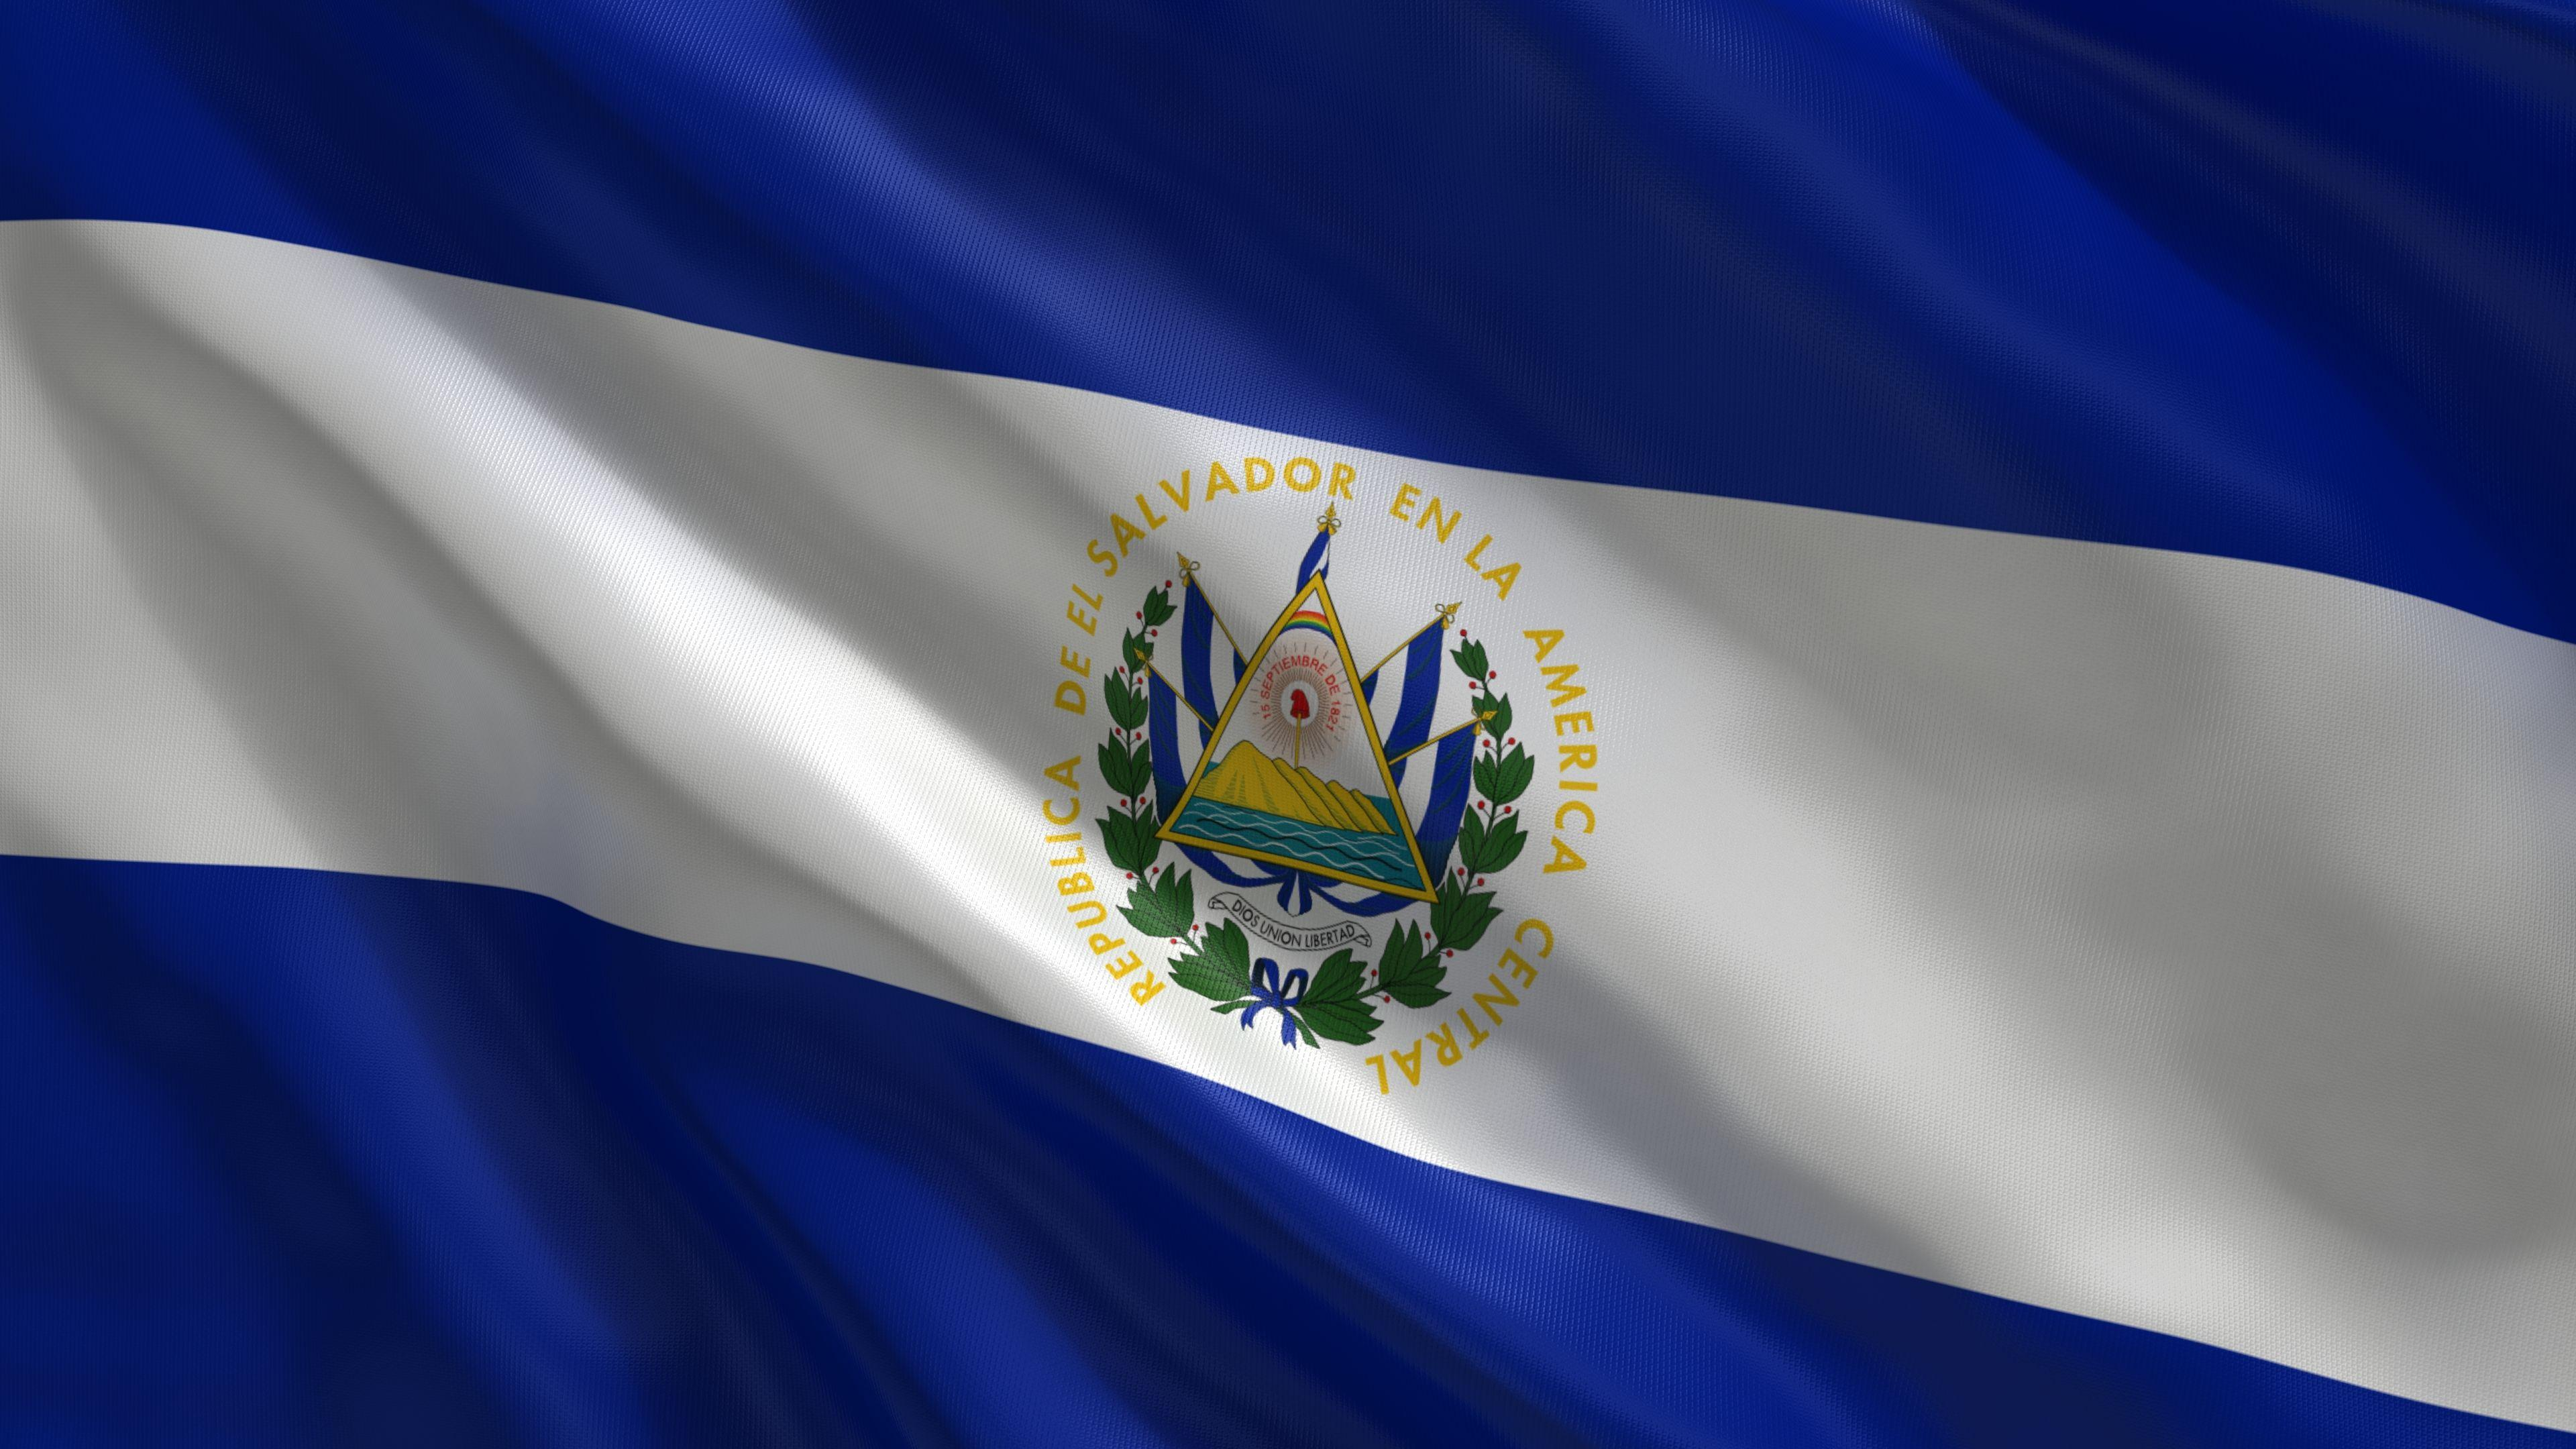 This is the national flag of El Salvador. It has two colors, blue